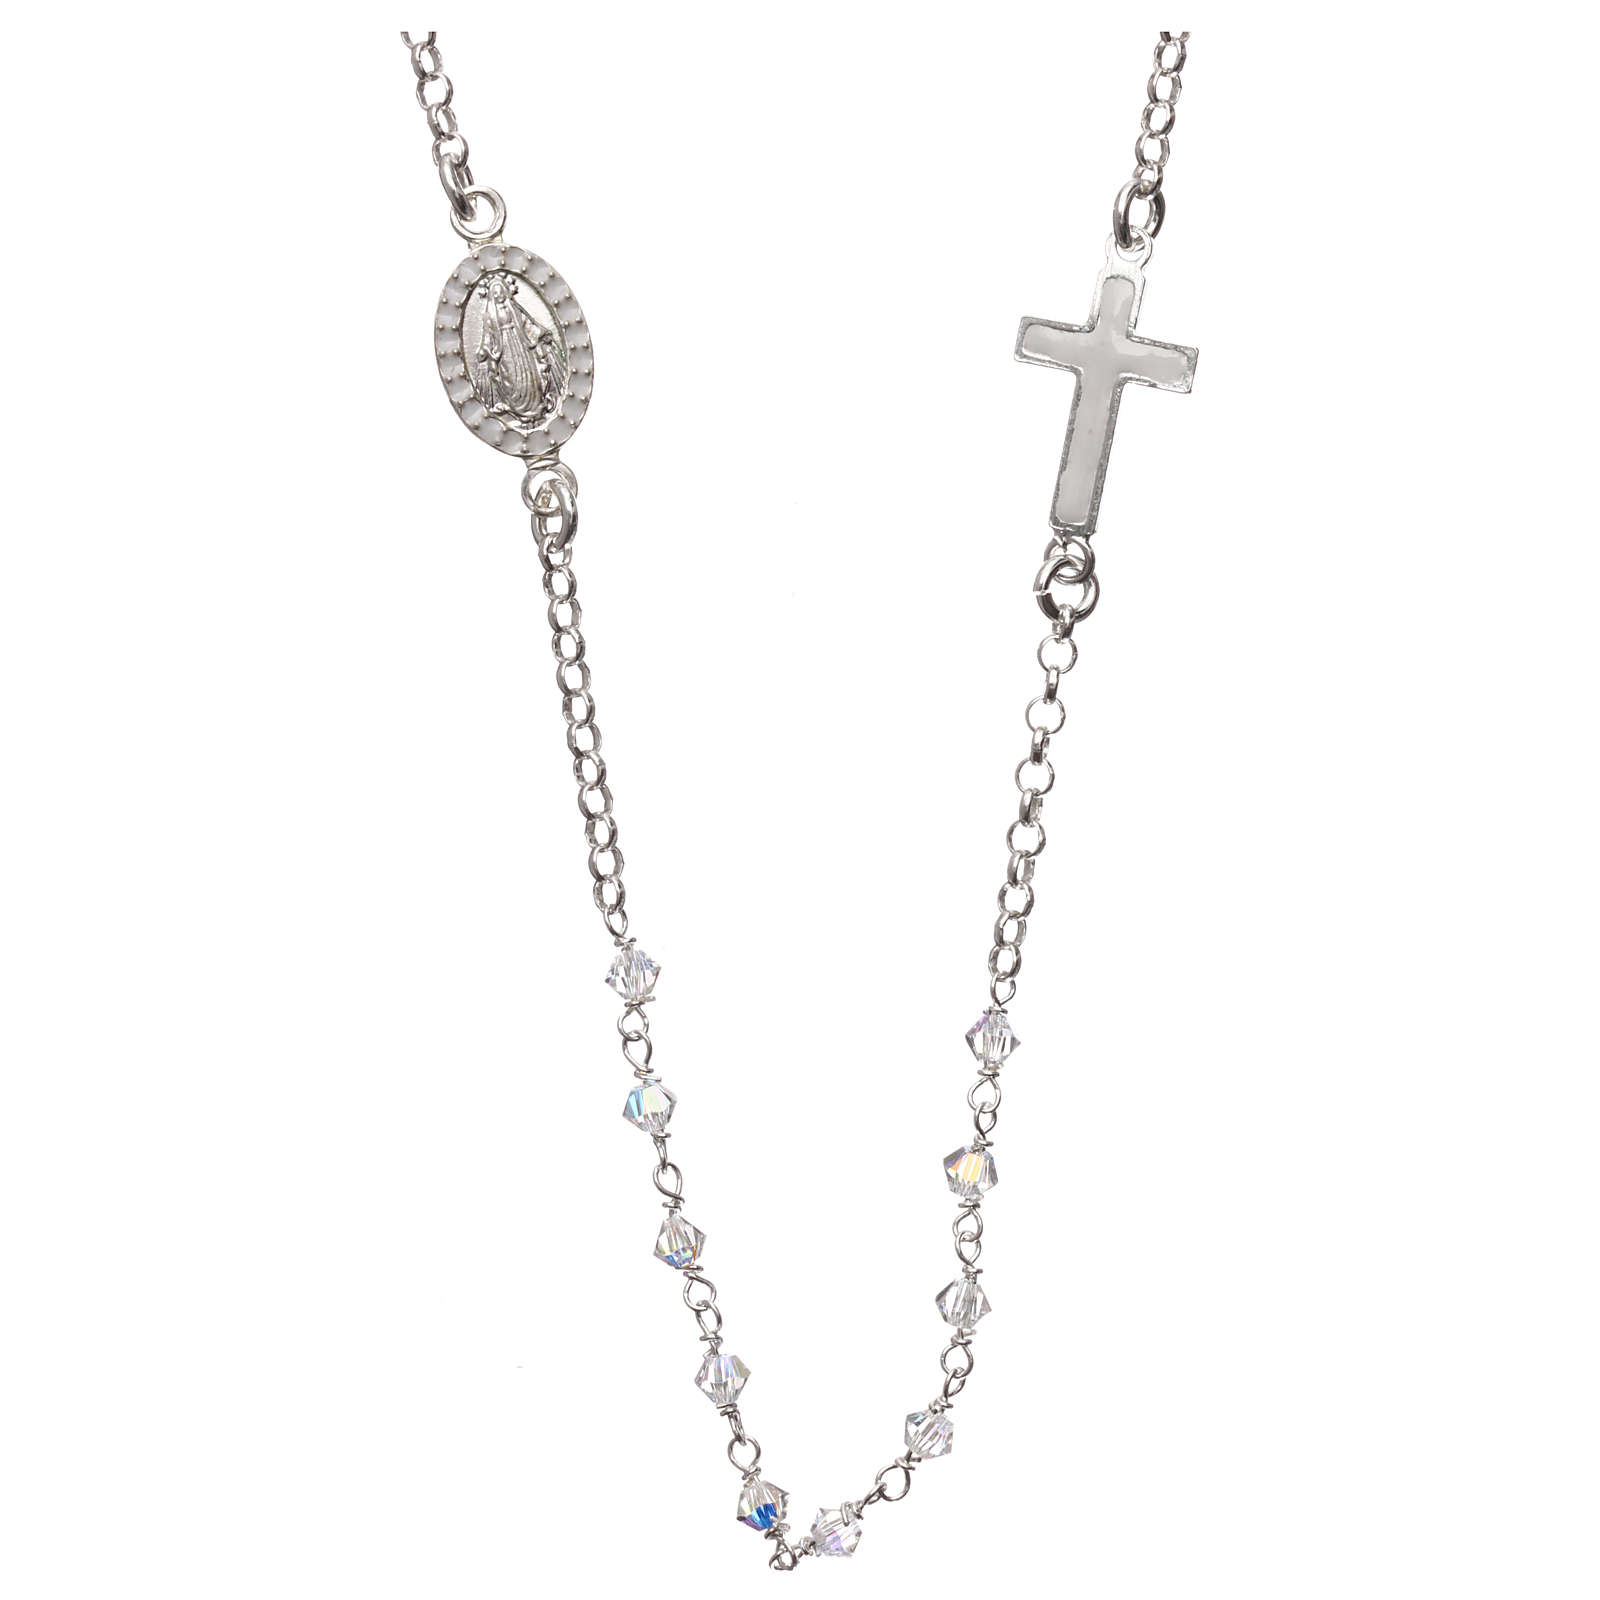 Rosary necklace in 925 silver and transparent Swarovski crystals 4